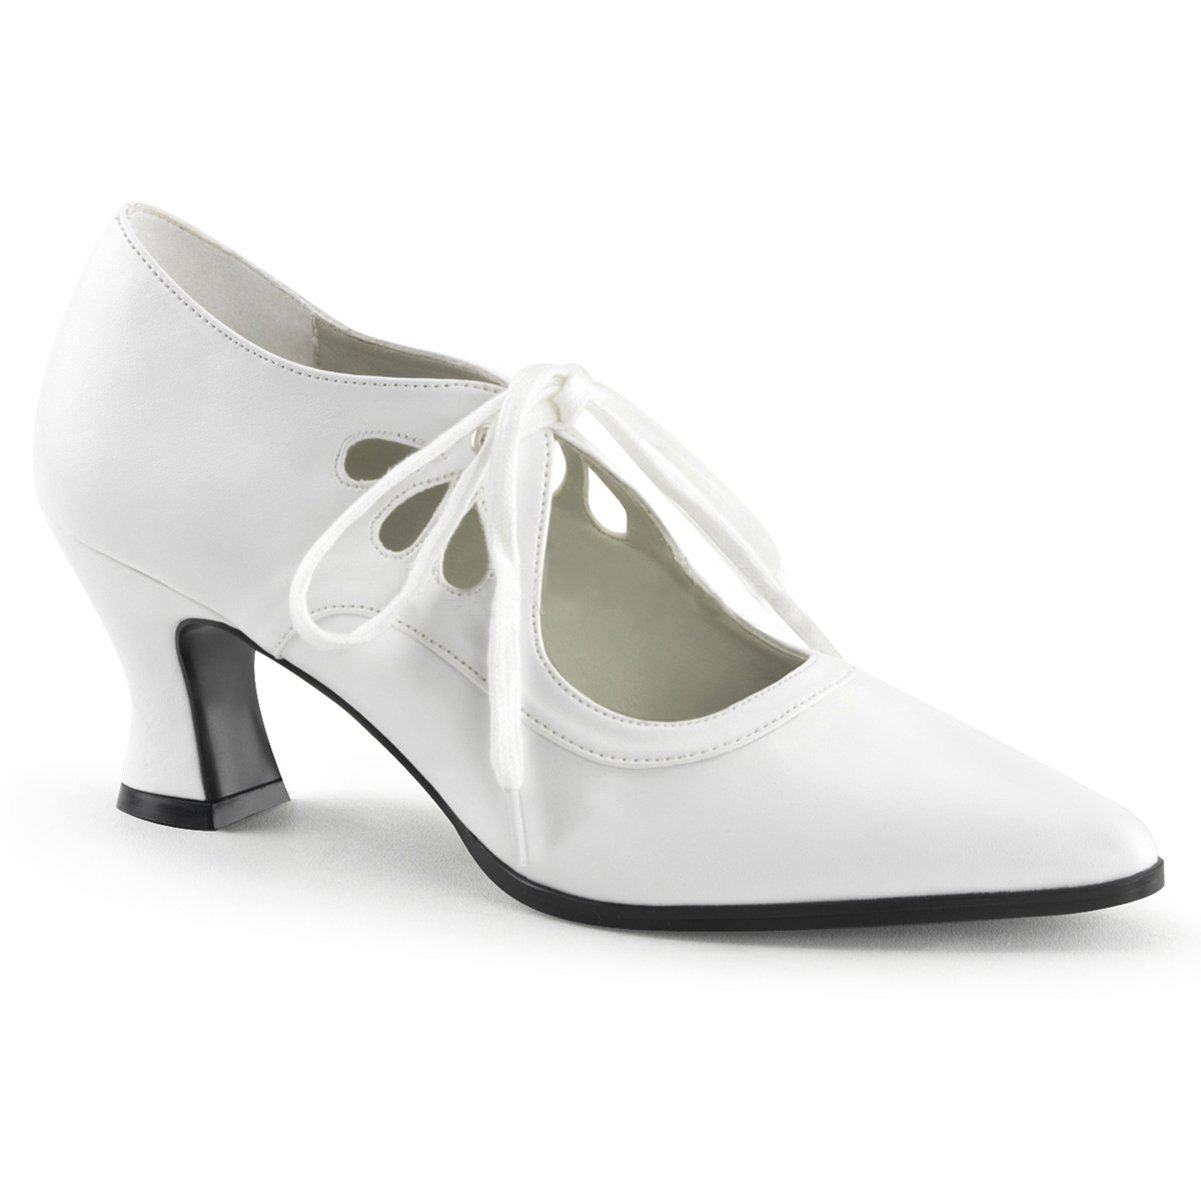 8b9cdf40f8c56 Summitfashions Womens White 2 1/2 Inch Mary Jane Heels with Cutouts and  Lace Up